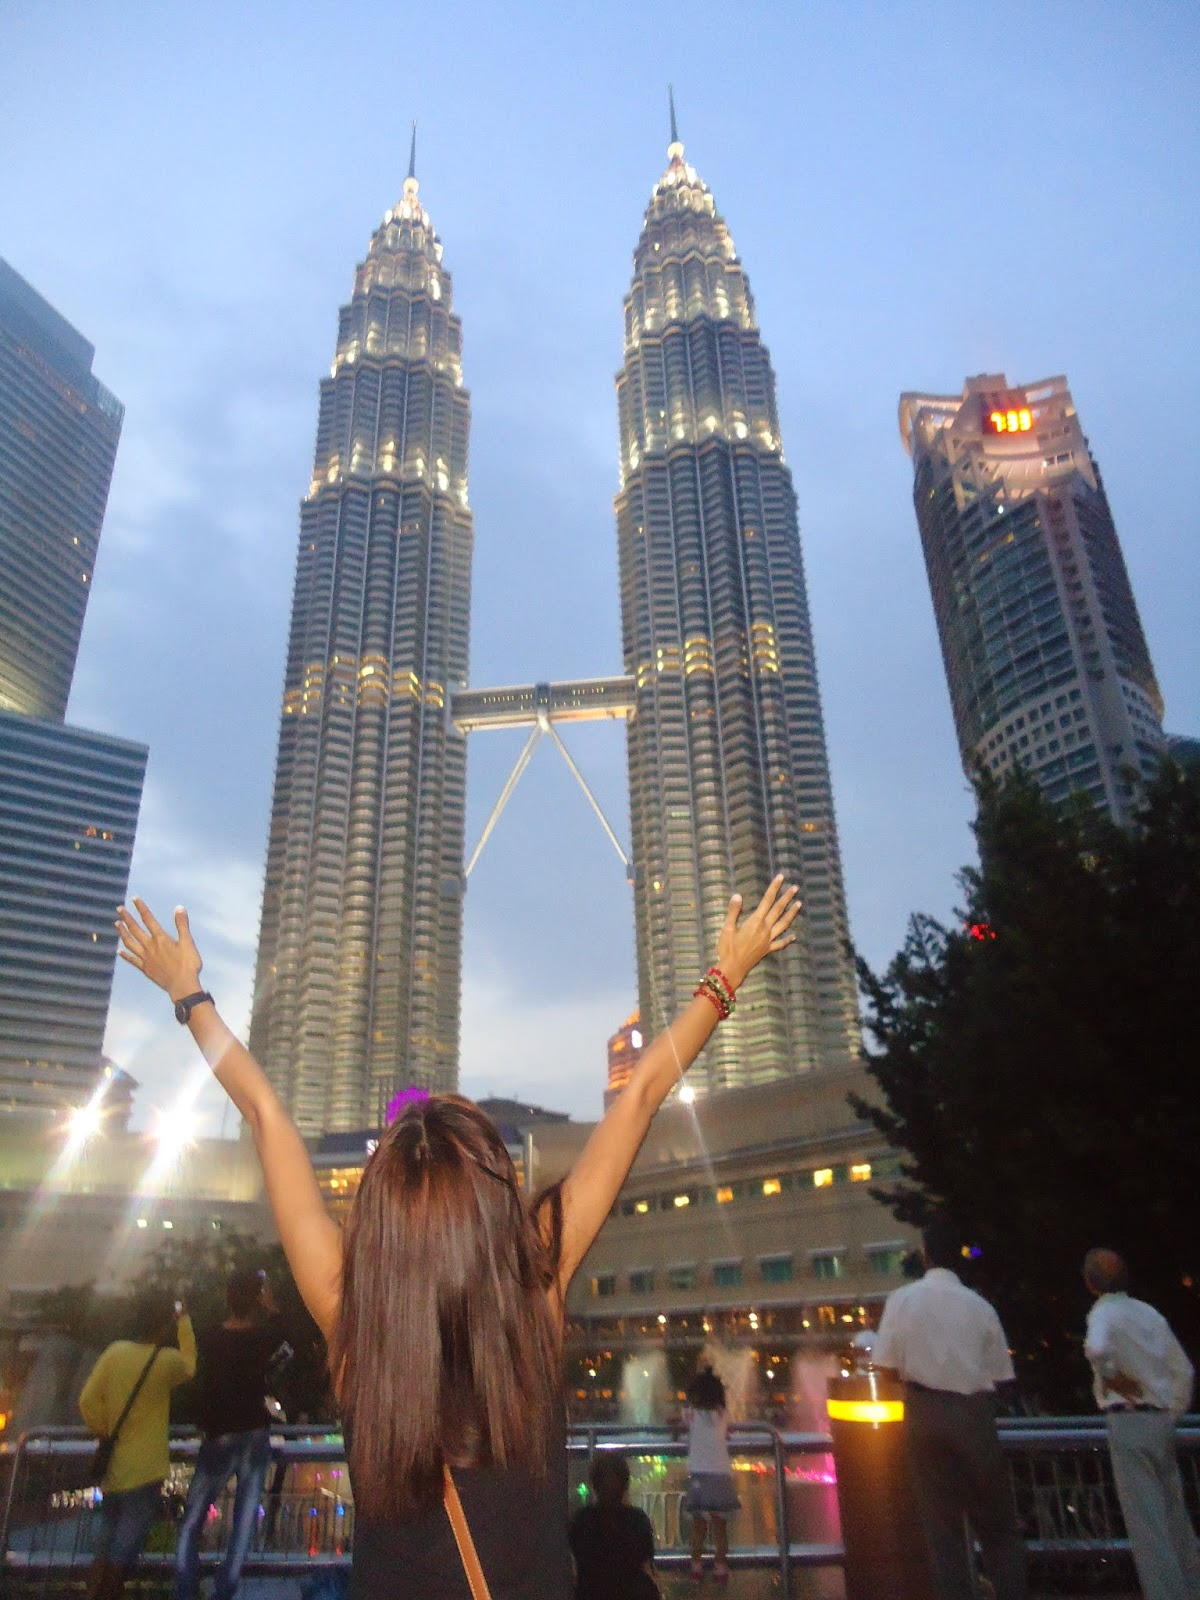 Meeting the Twin Tower